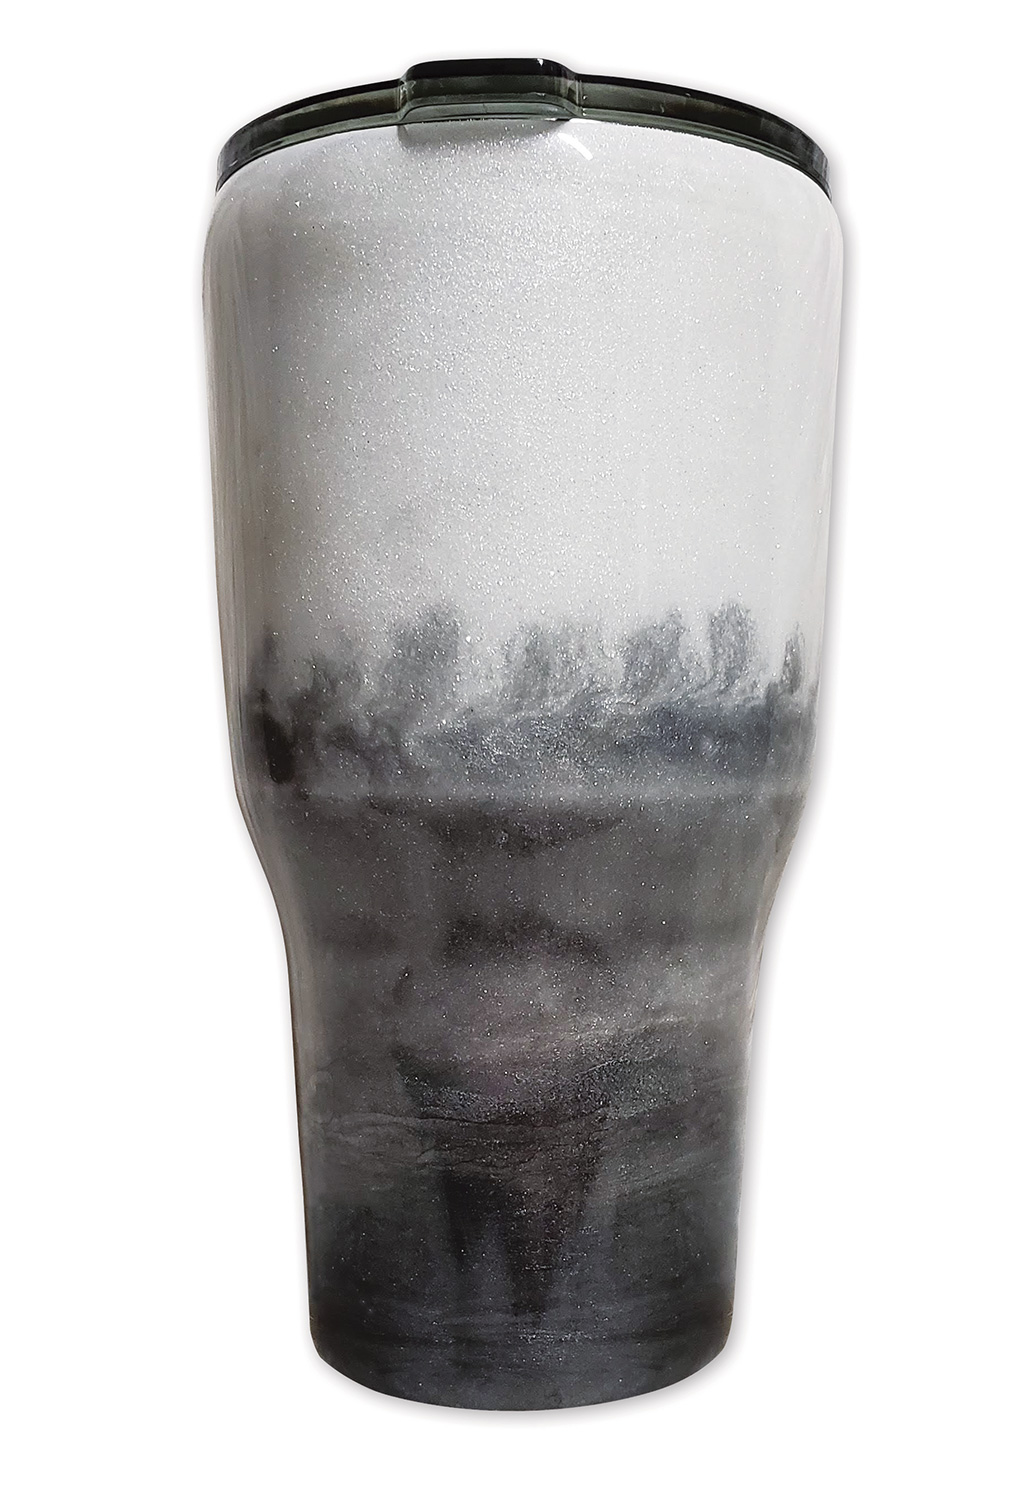 Resin and Pearl Ex tumbler by Carolyn Stowe @ItsMathewsMade